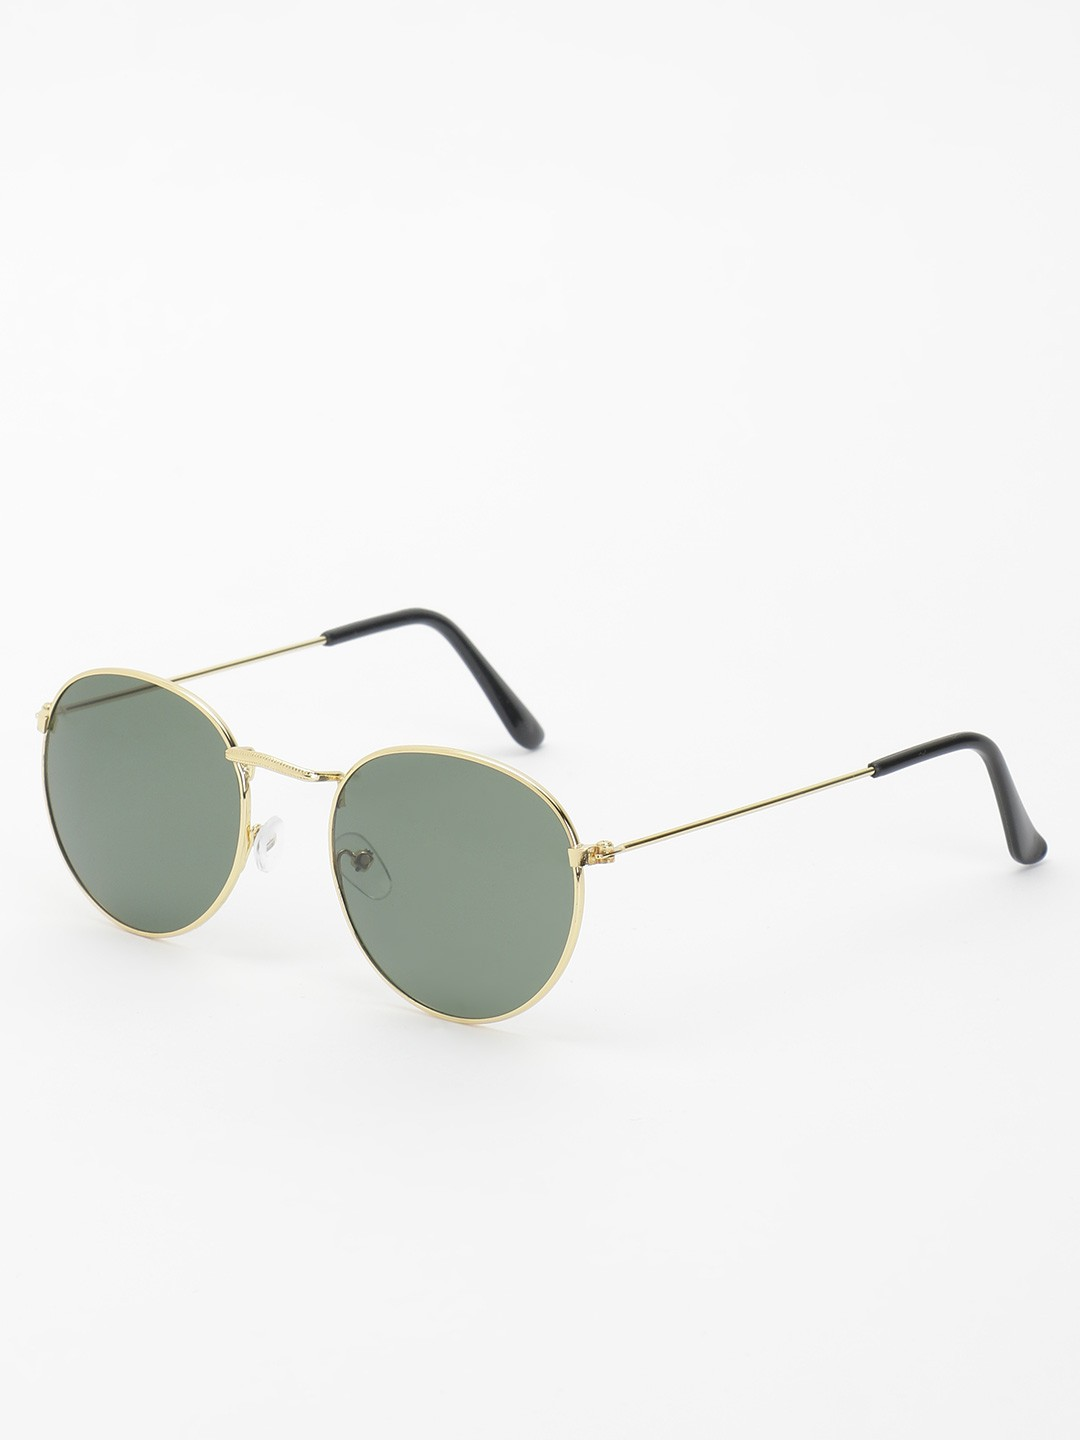 KOOVS Black Tinted Lens Round Sunglasses 1